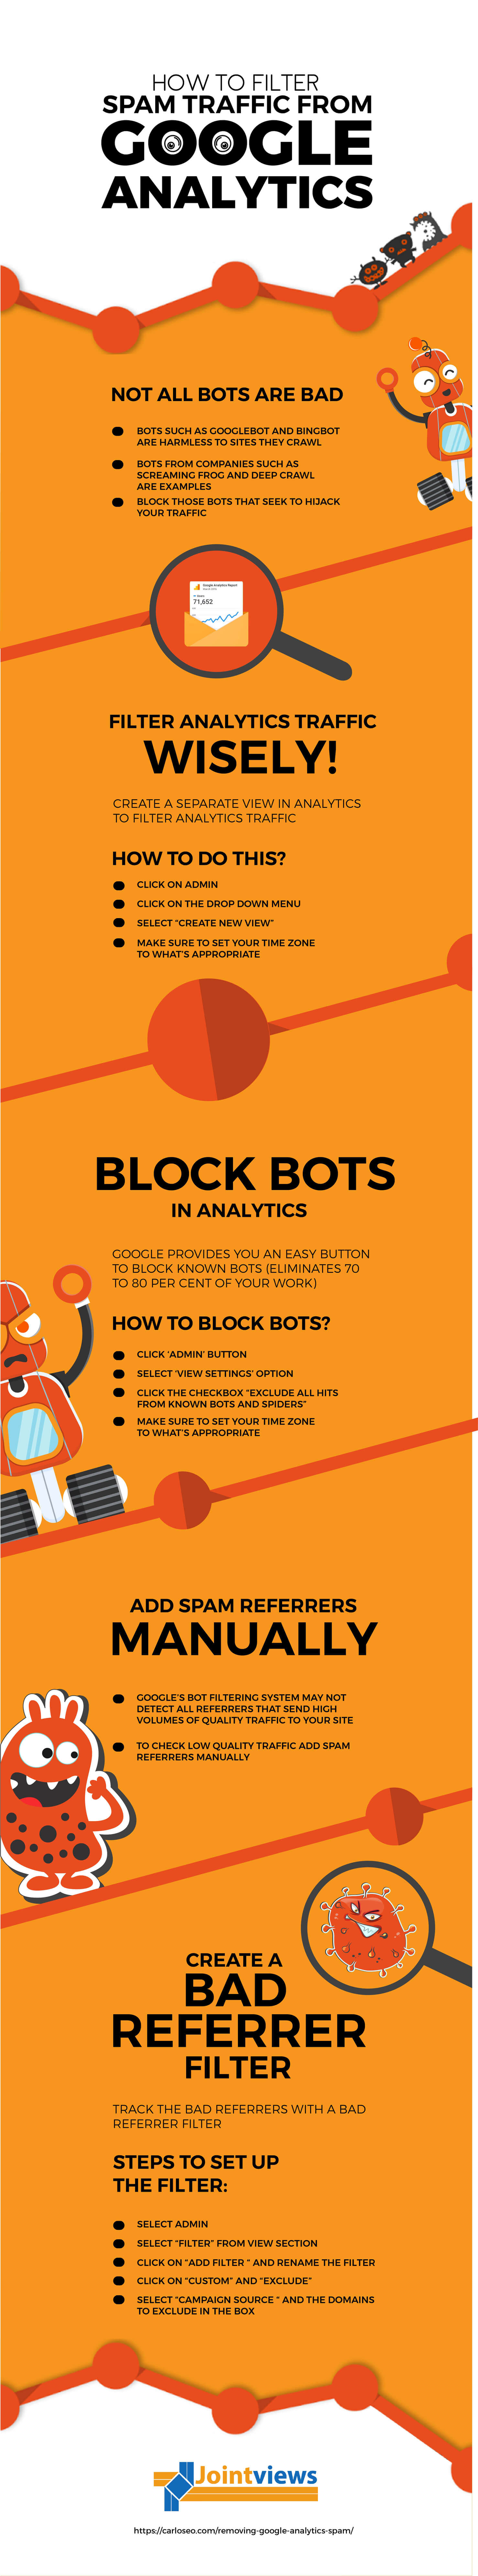 How-to-Filter-Spam-Traffic-From-Google-Analytics-infographic-plaza